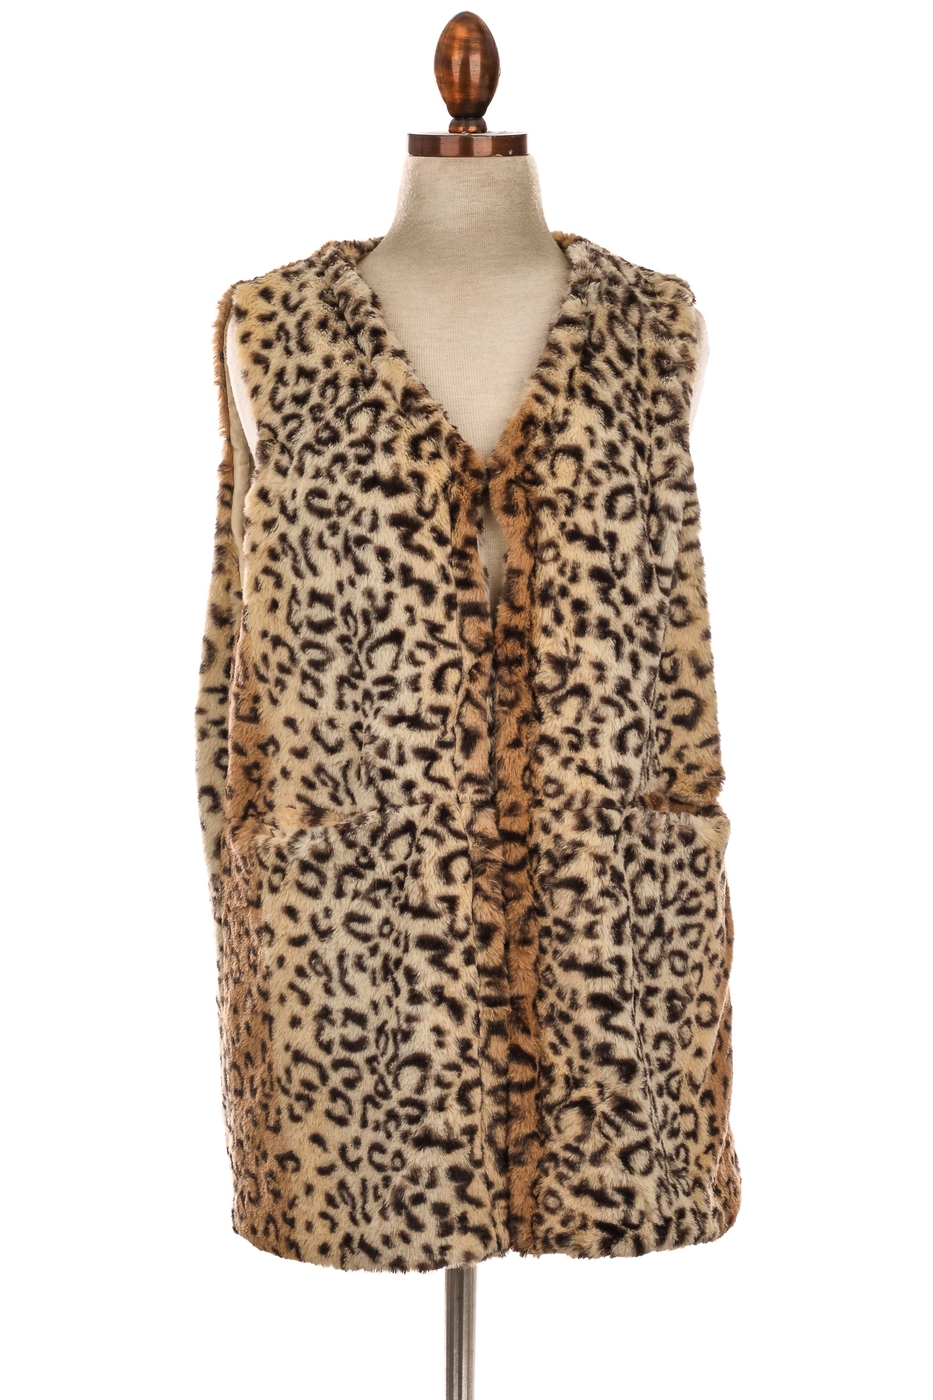 Fury Animal Print Vest - orangeshine.com